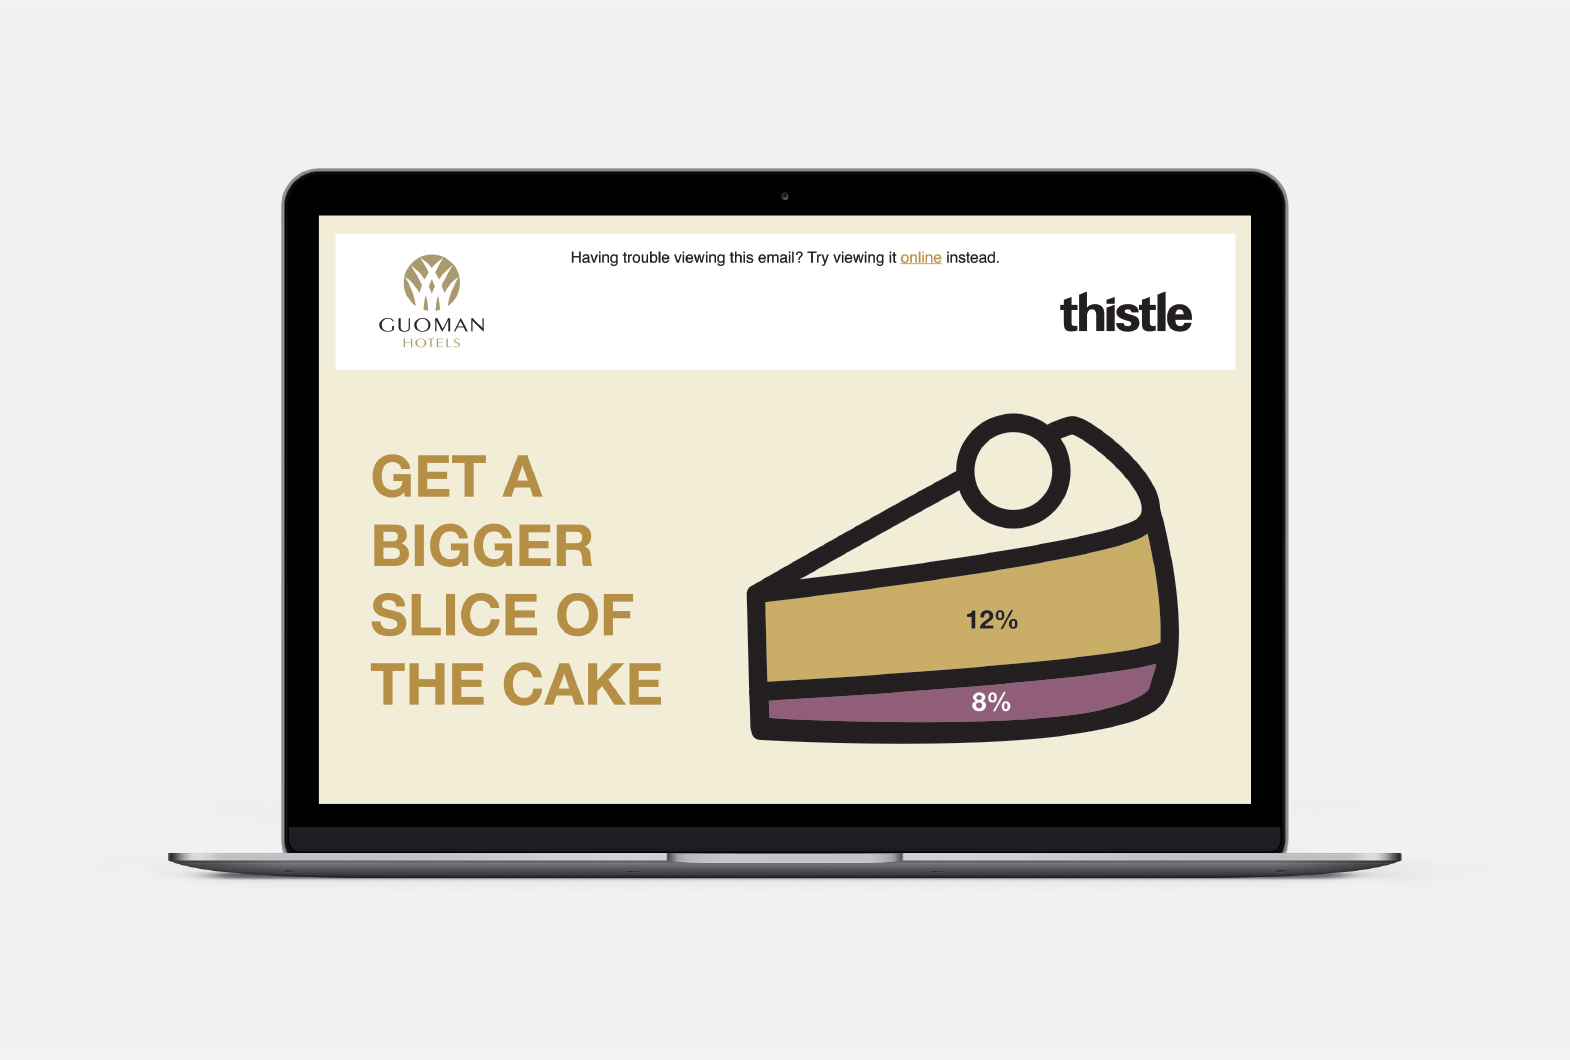 Thistle Guoman hotel email marketing